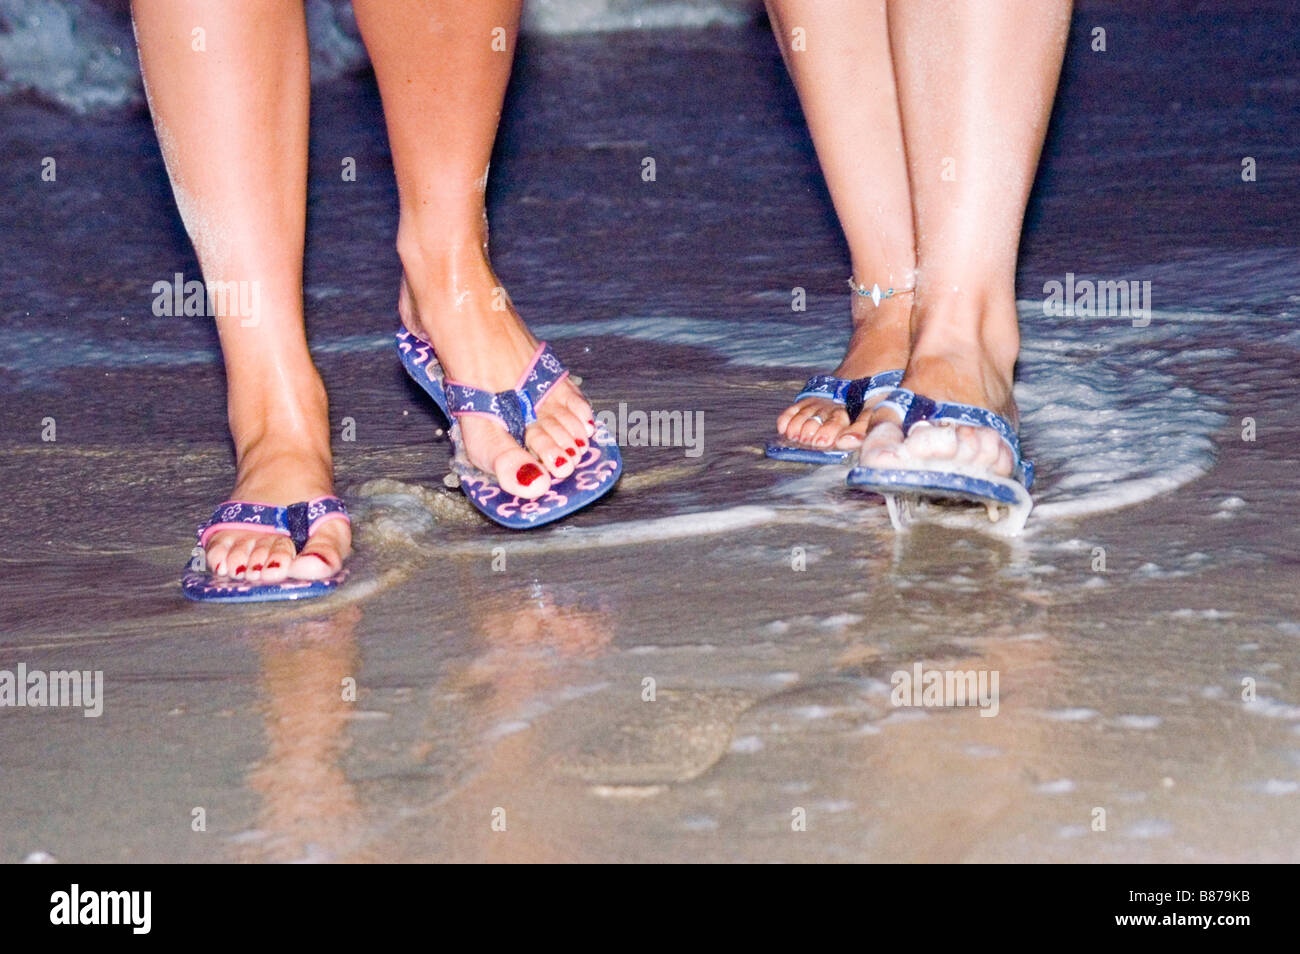 d3f9f7d2b5d4 Two pairs of feet walk in shallow water wearing flip flops Model released